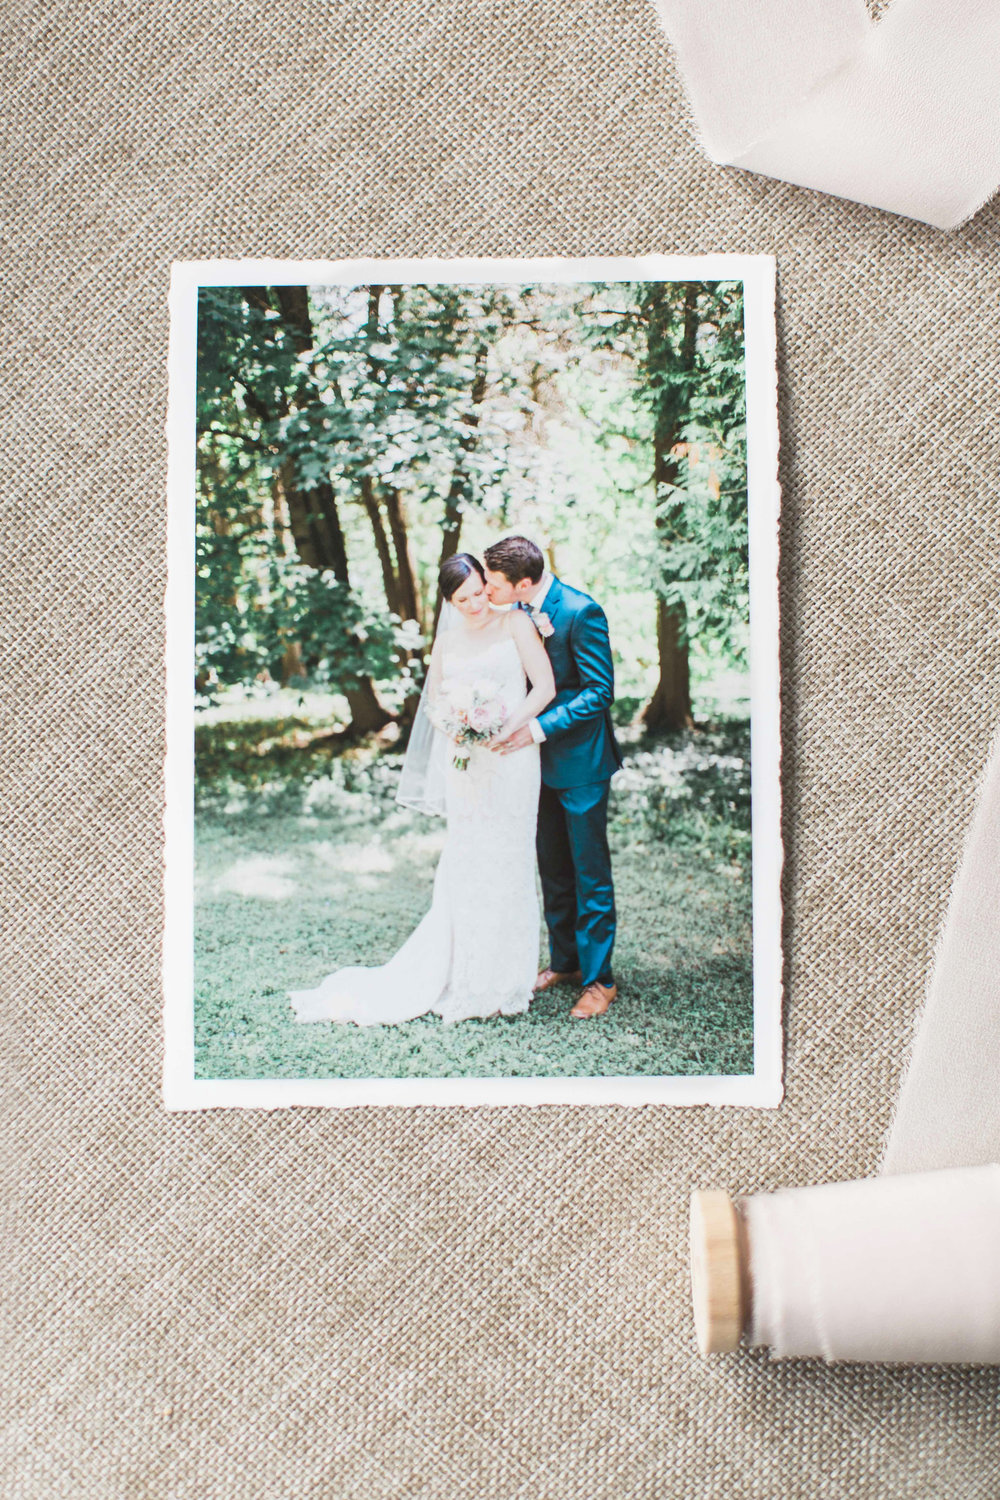 Fine art prints from wedding.